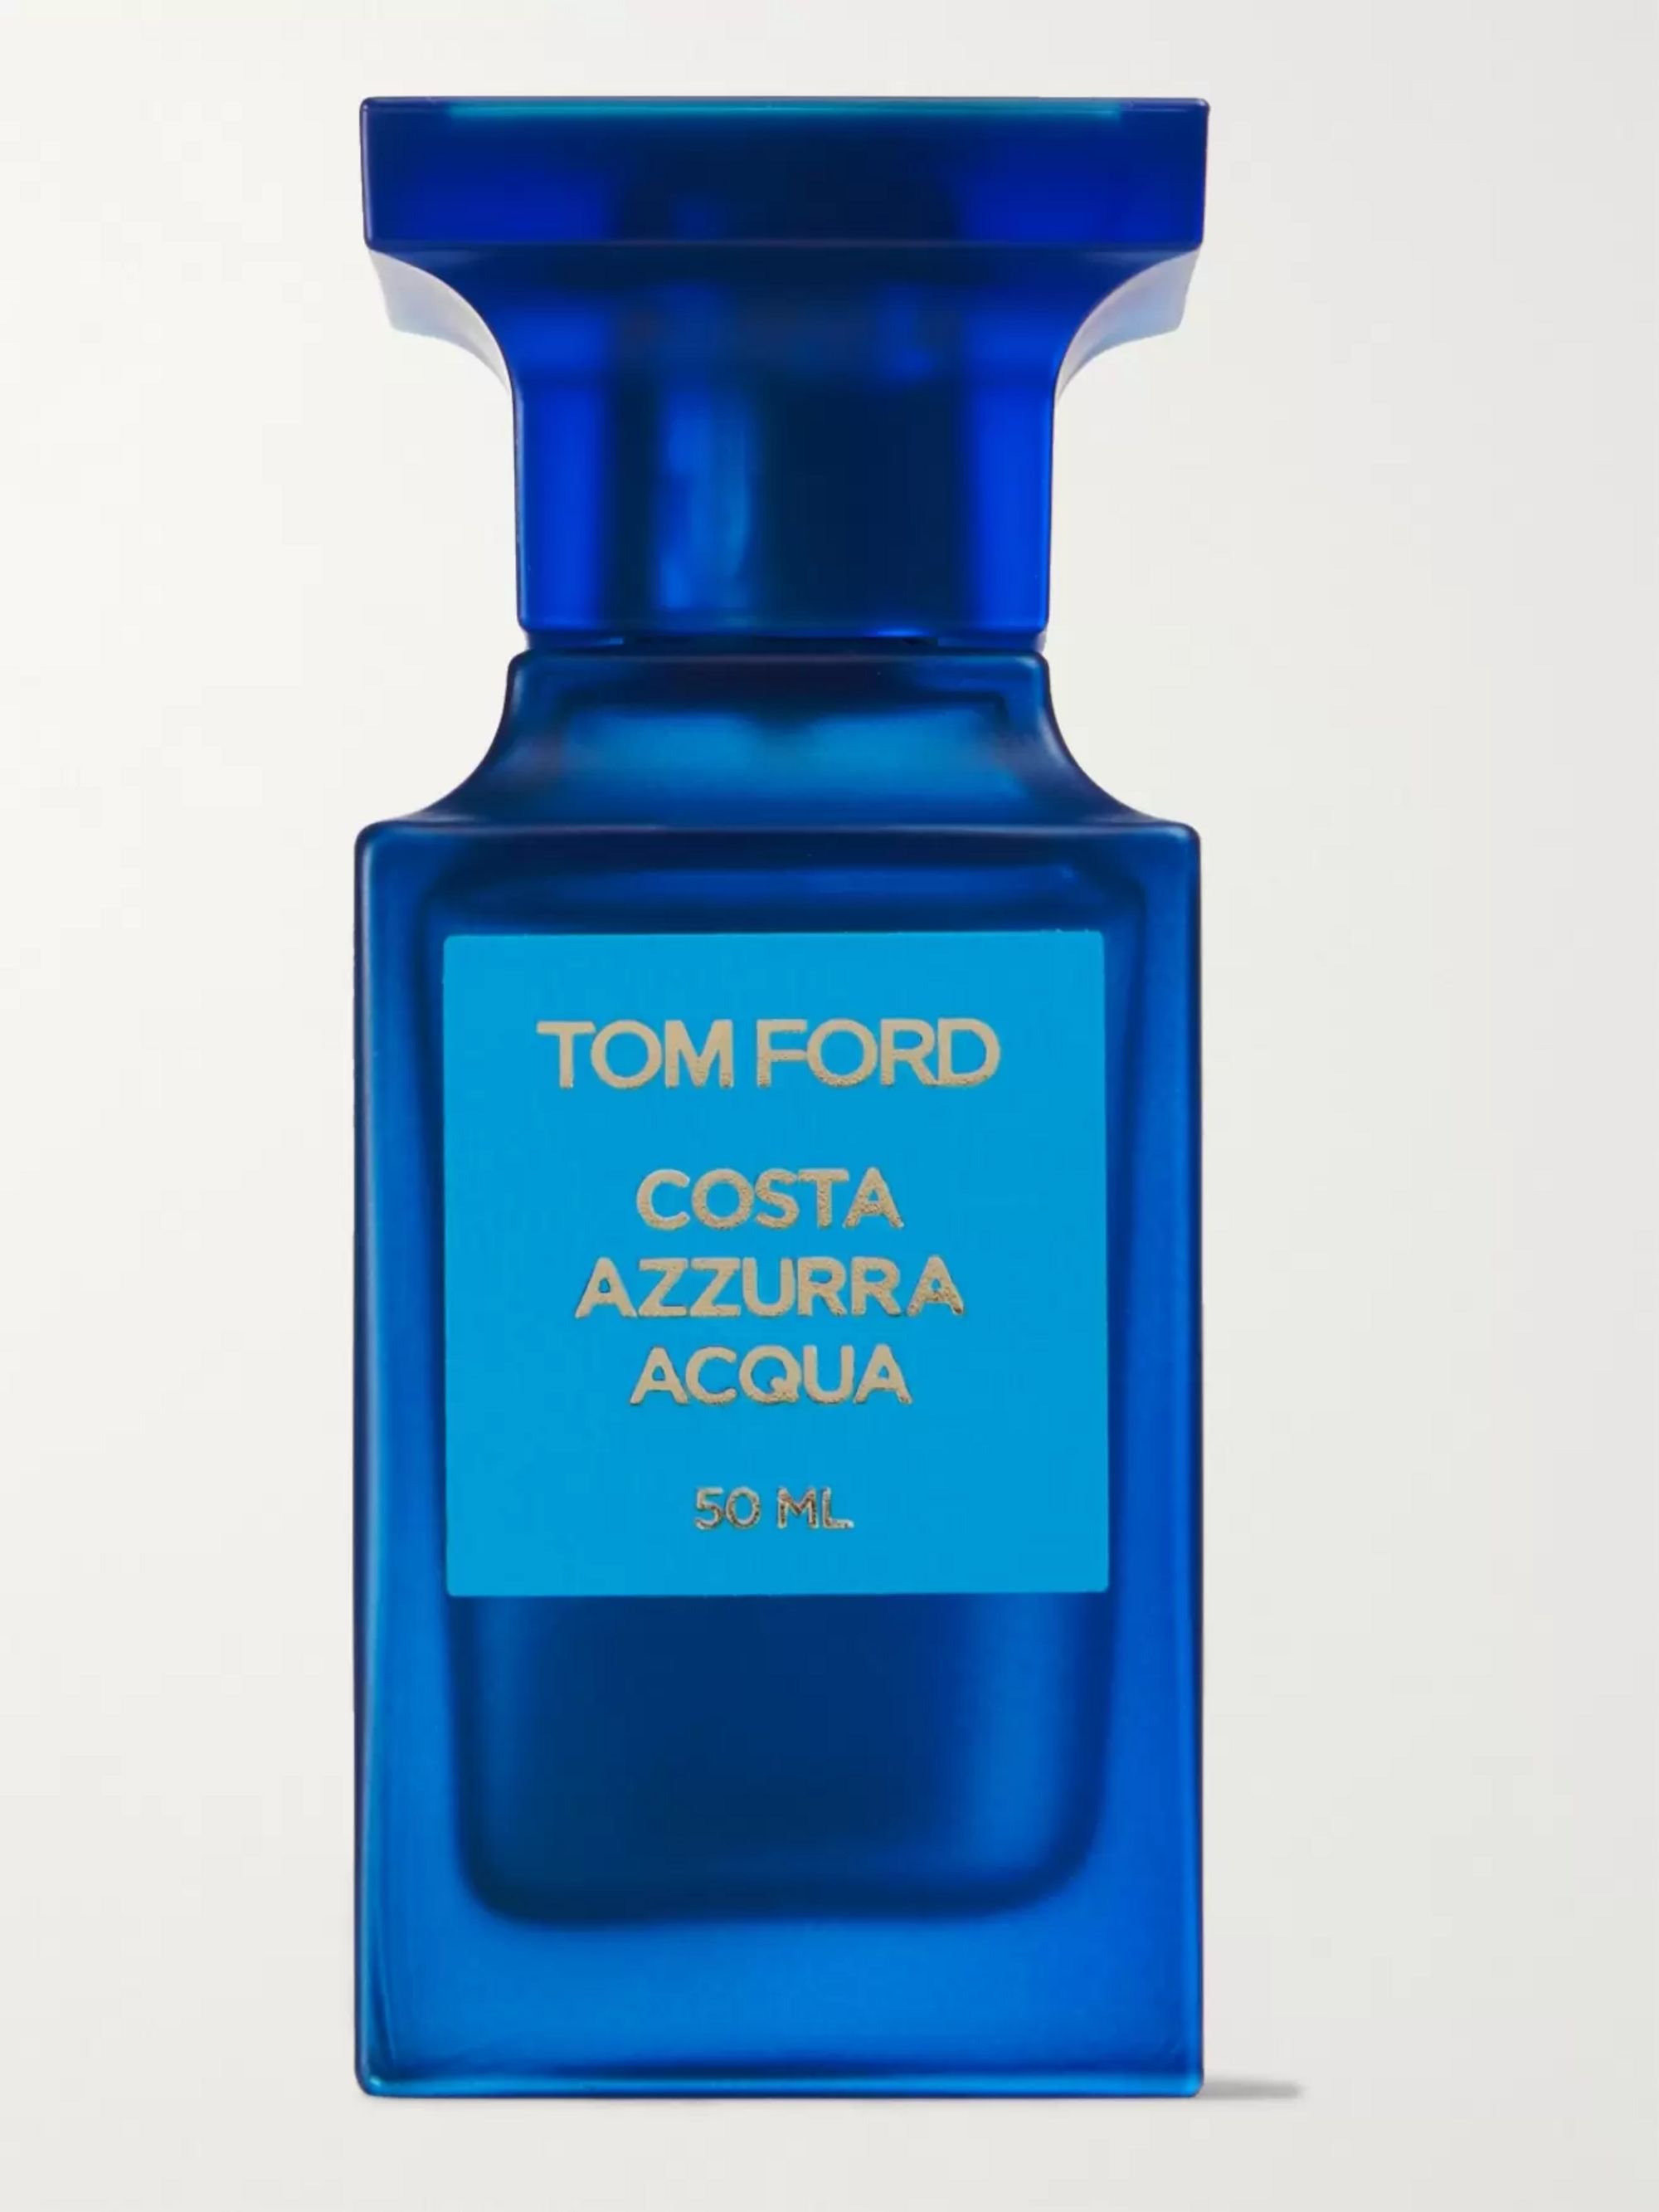 TOM FORD BEAUTY Costa Azzurra Acqua Eau de Parfum - Lemon, Cypress Oil & Amber, 50ml